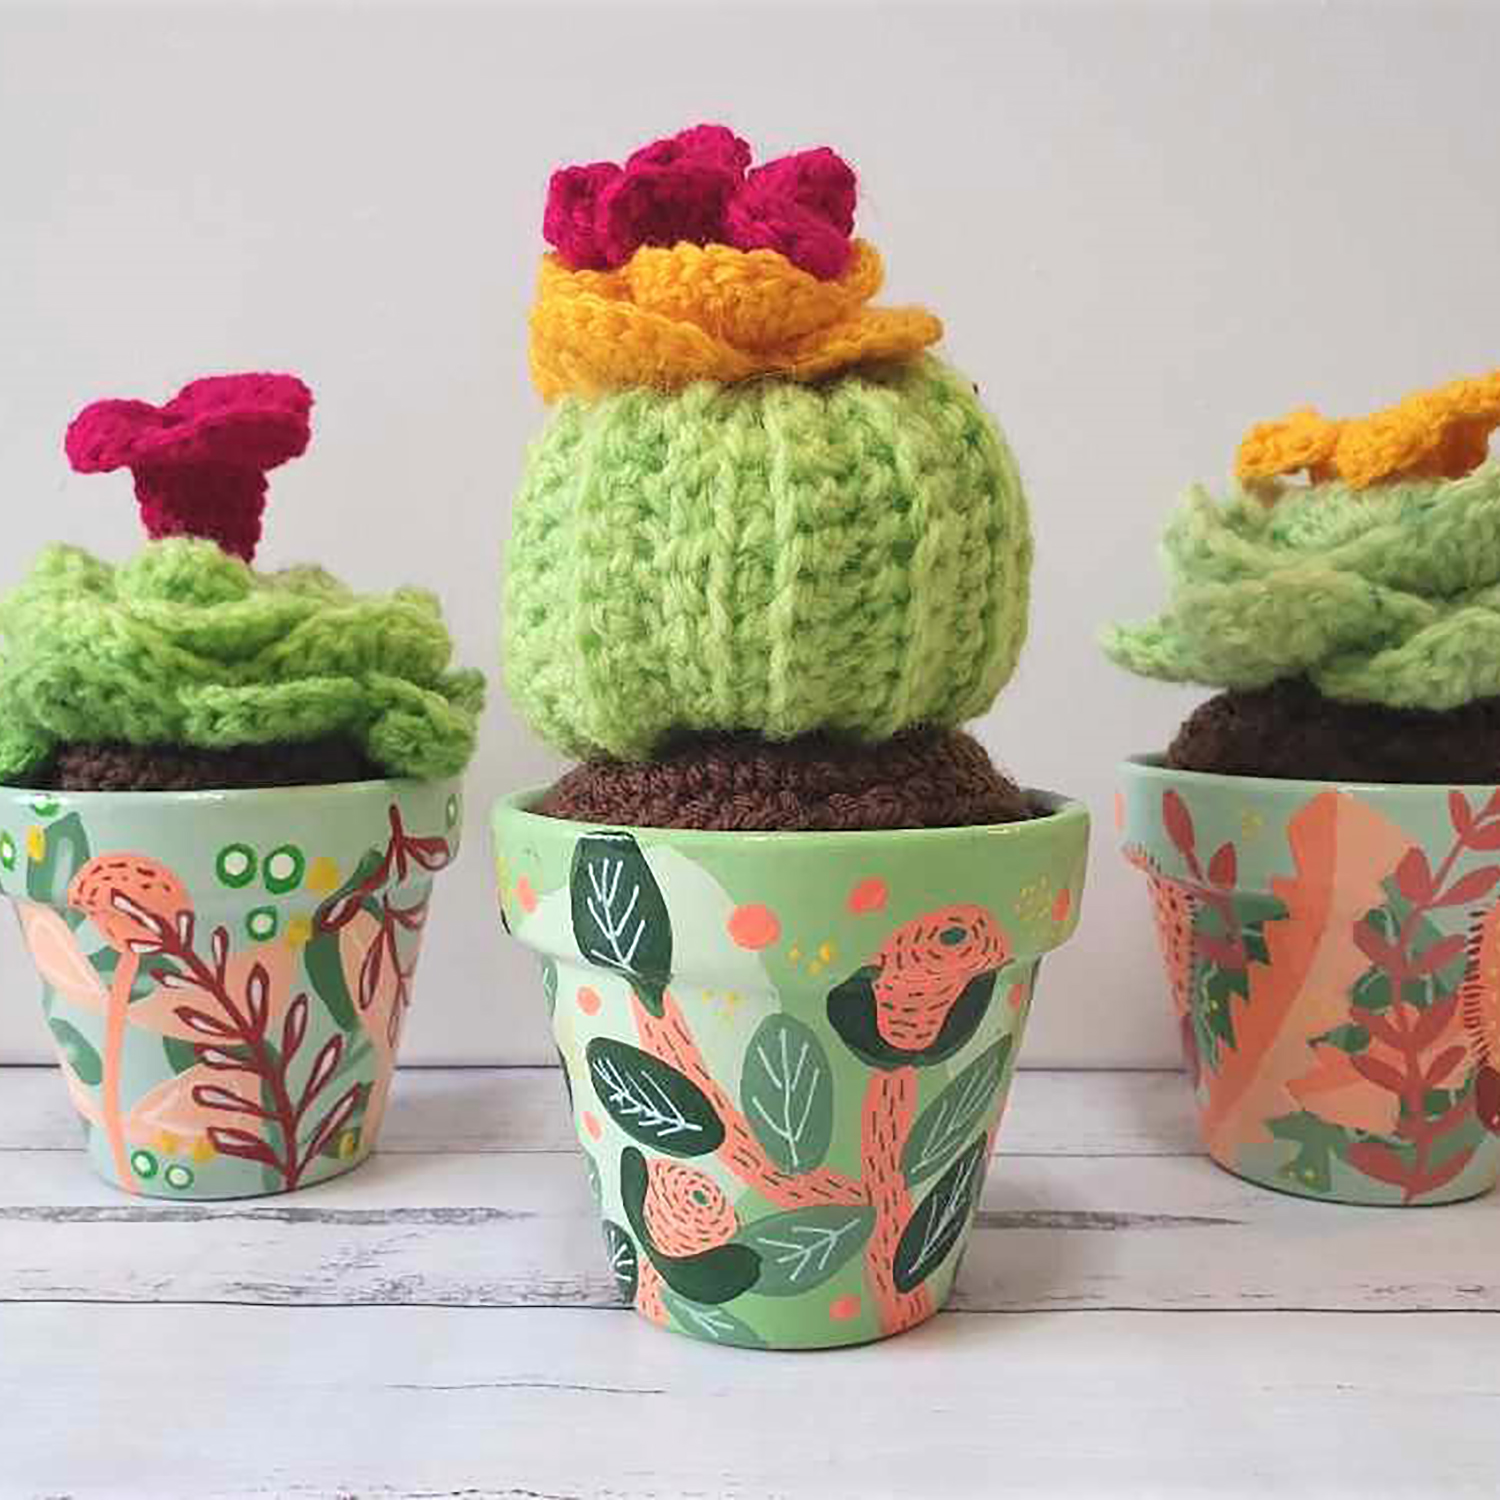 Three painted pots with crocheted cacti in them